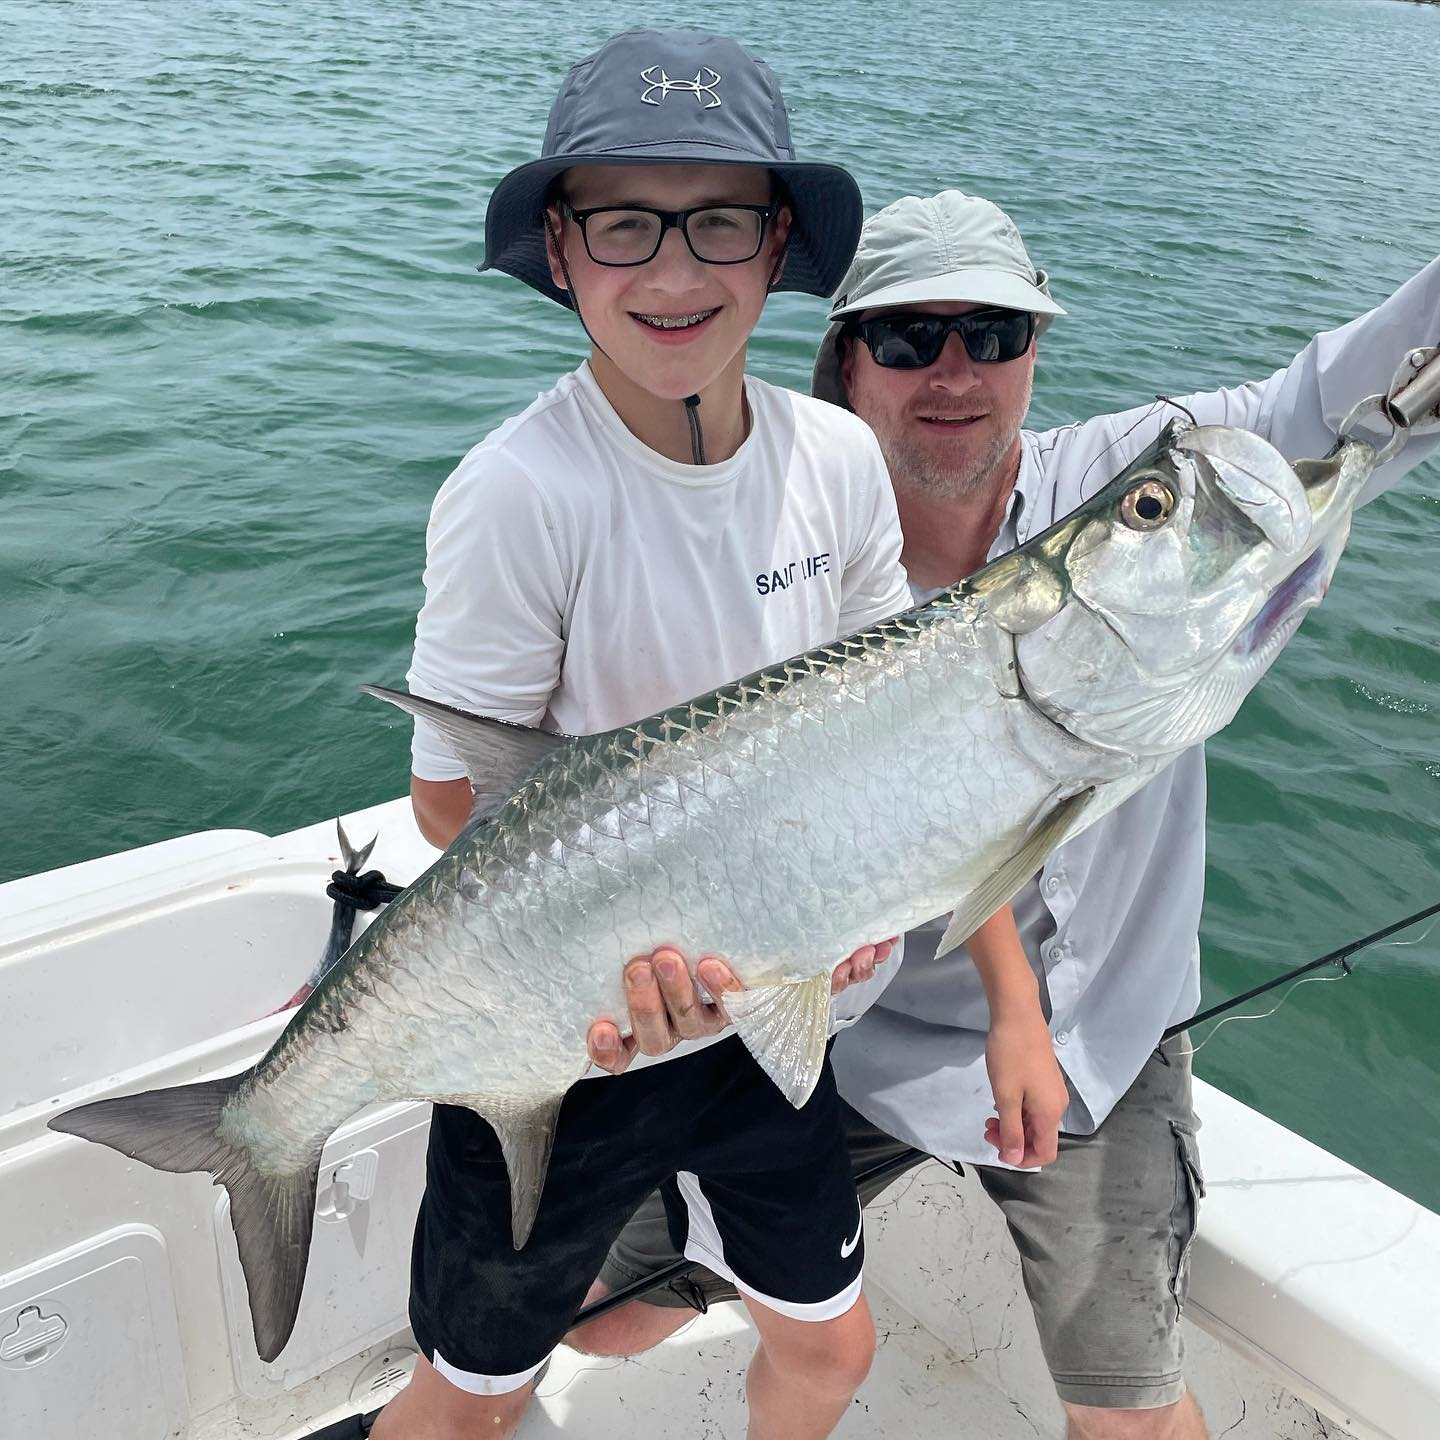 What a day in Biscayne Bay for the Dillaber Family from Wisconsin! Great  day on the reef the first day with me, then the second day they had a great day offshore with @landh_sportfishing , then they finished it today with insane Seatrout action on artificials, good Mangrove Snapper action, And then each of the boys caught their first Tarpon to cap it off! #GOHARDFISHING #miamibeach #charterfishing #miamisluckiestcharterboat #GOHARDINTHEPAINT @starbrite_com @captharrysfishingsupply @pennfishing thanks for your continued support Dillaber family!  Its great to watch the little ones grow and progress their angling skills forward.